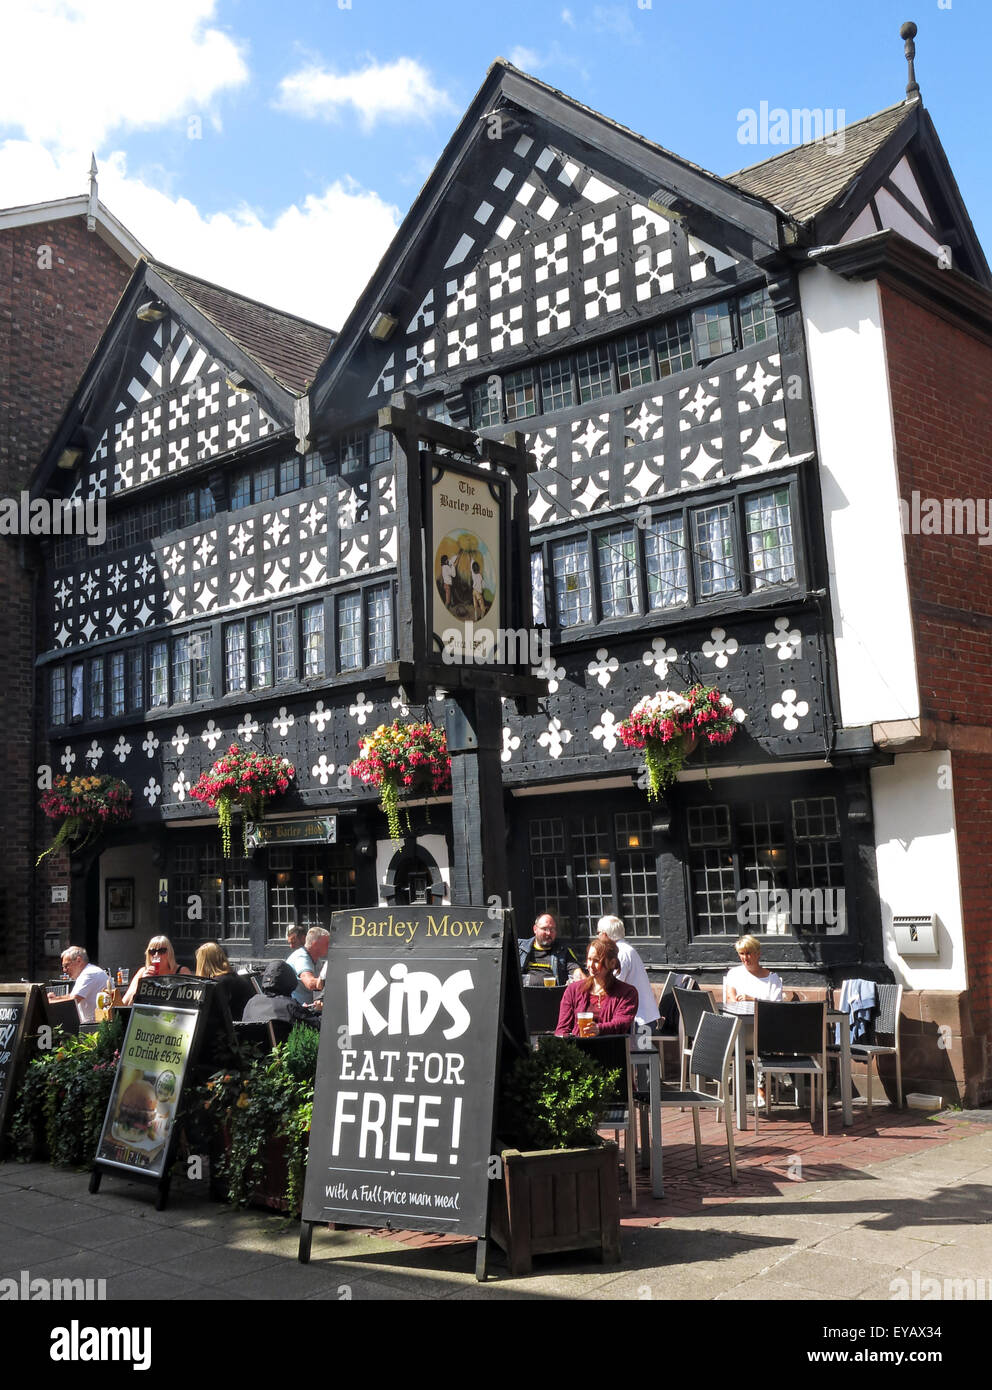 oldest,bar,united,kingdom,GB,Great Britain,history,historic,pint,beer,bitter,drink,drinkers,with,Square,Marketplace,Timber,Framed,Tudor,Cheshire,England,UK,listed,building,I,Grade1,one,timber-framed,public,house,black,white,quatrefoils,red,sandstone,plinth,jettied,gable,Golden Square,Grade One,GoTonySmith,tavern,pubsign,sign,BarleyMow,WA1,WBC,Borough,Council,wood,wooden,Portrait,Buy Pictures of,Buy Images Of,Market Place,Kids eat Free,Barley Mow Public House,Grade2 Listed